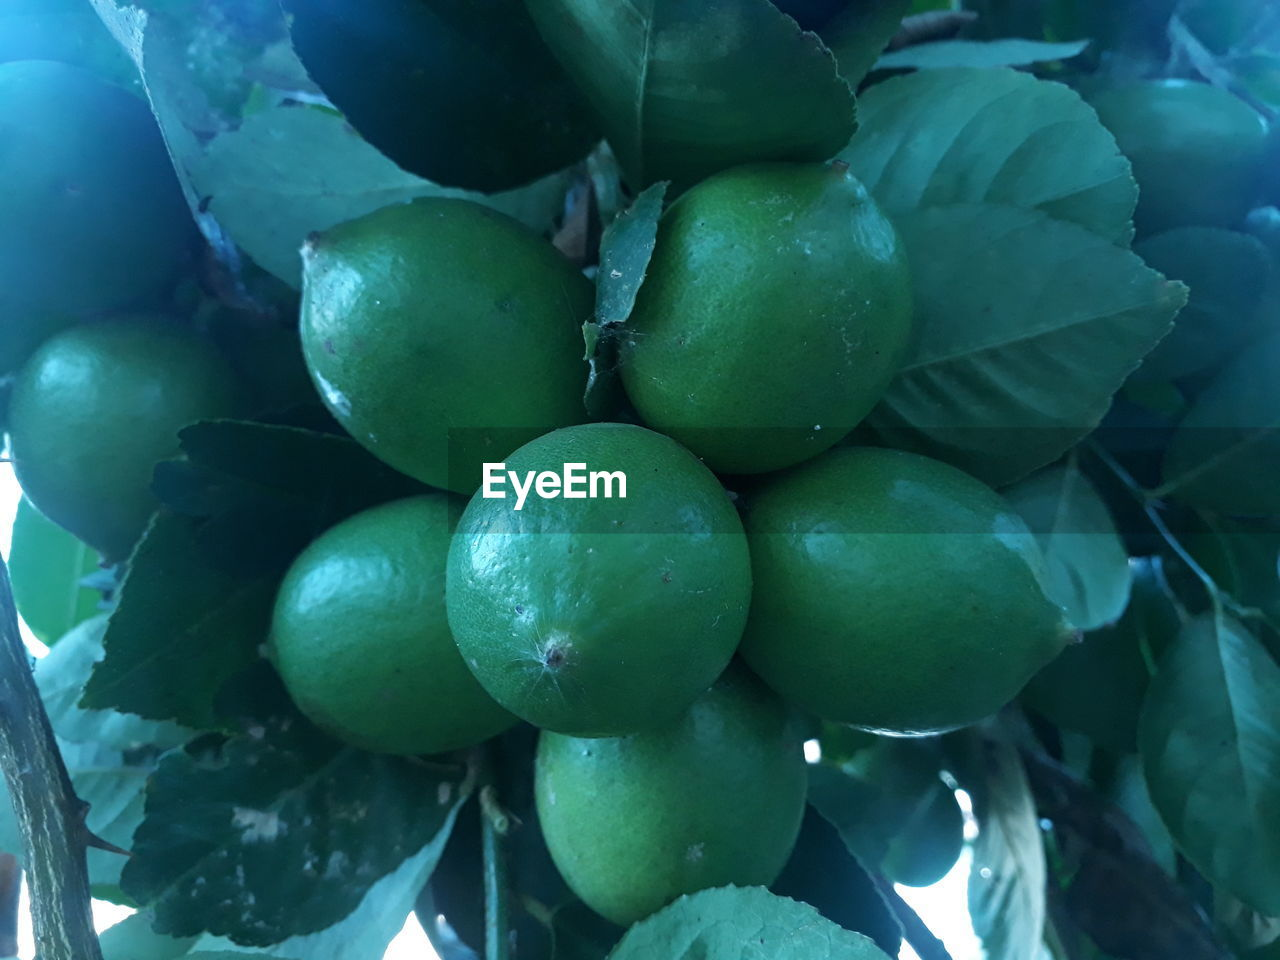 healthy eating, fruit, food, food and drink, freshness, wellbeing, green color, close-up, no people, day, full frame, large group of objects, abundance, plant, leaf, backgrounds, plant part, nature, growth, outdoors, ripe